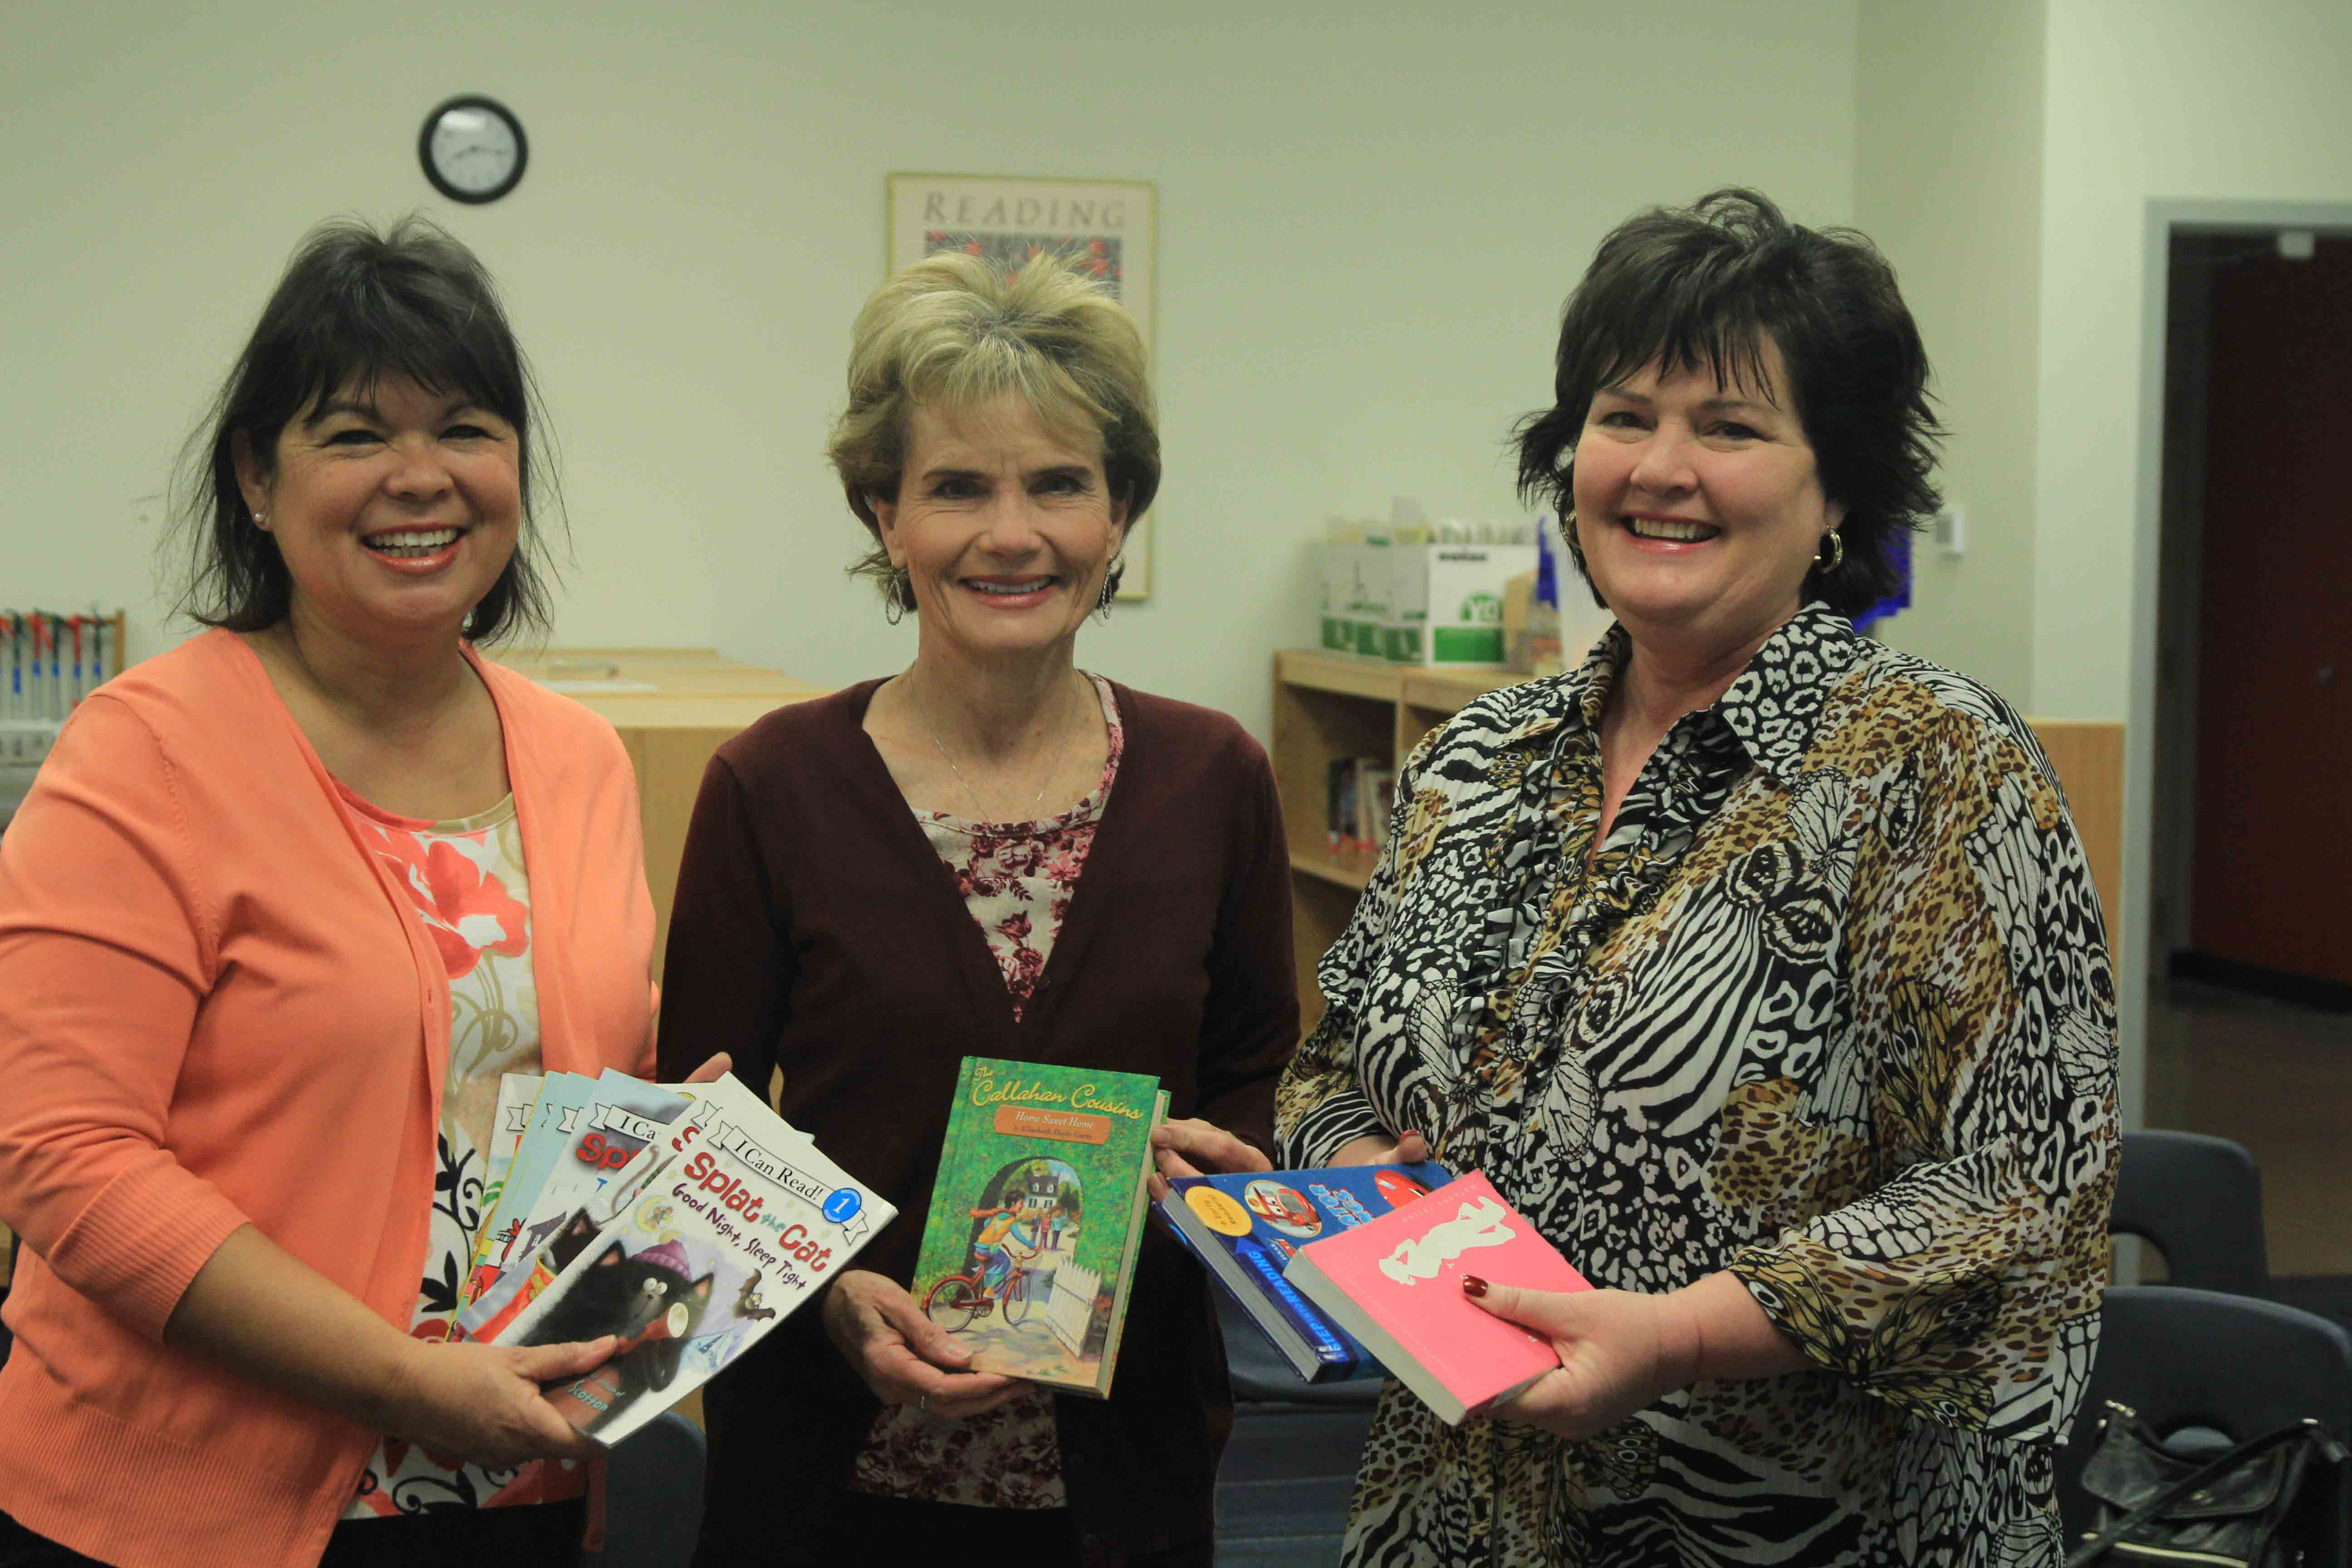 ANWA Book Drive Pictured Are Left To Right: ANWA President Past Deb Eaton, Principal Susan Stradling, ANWA President Melinda Sanchez. Photo By Nico Sanchez Photography.